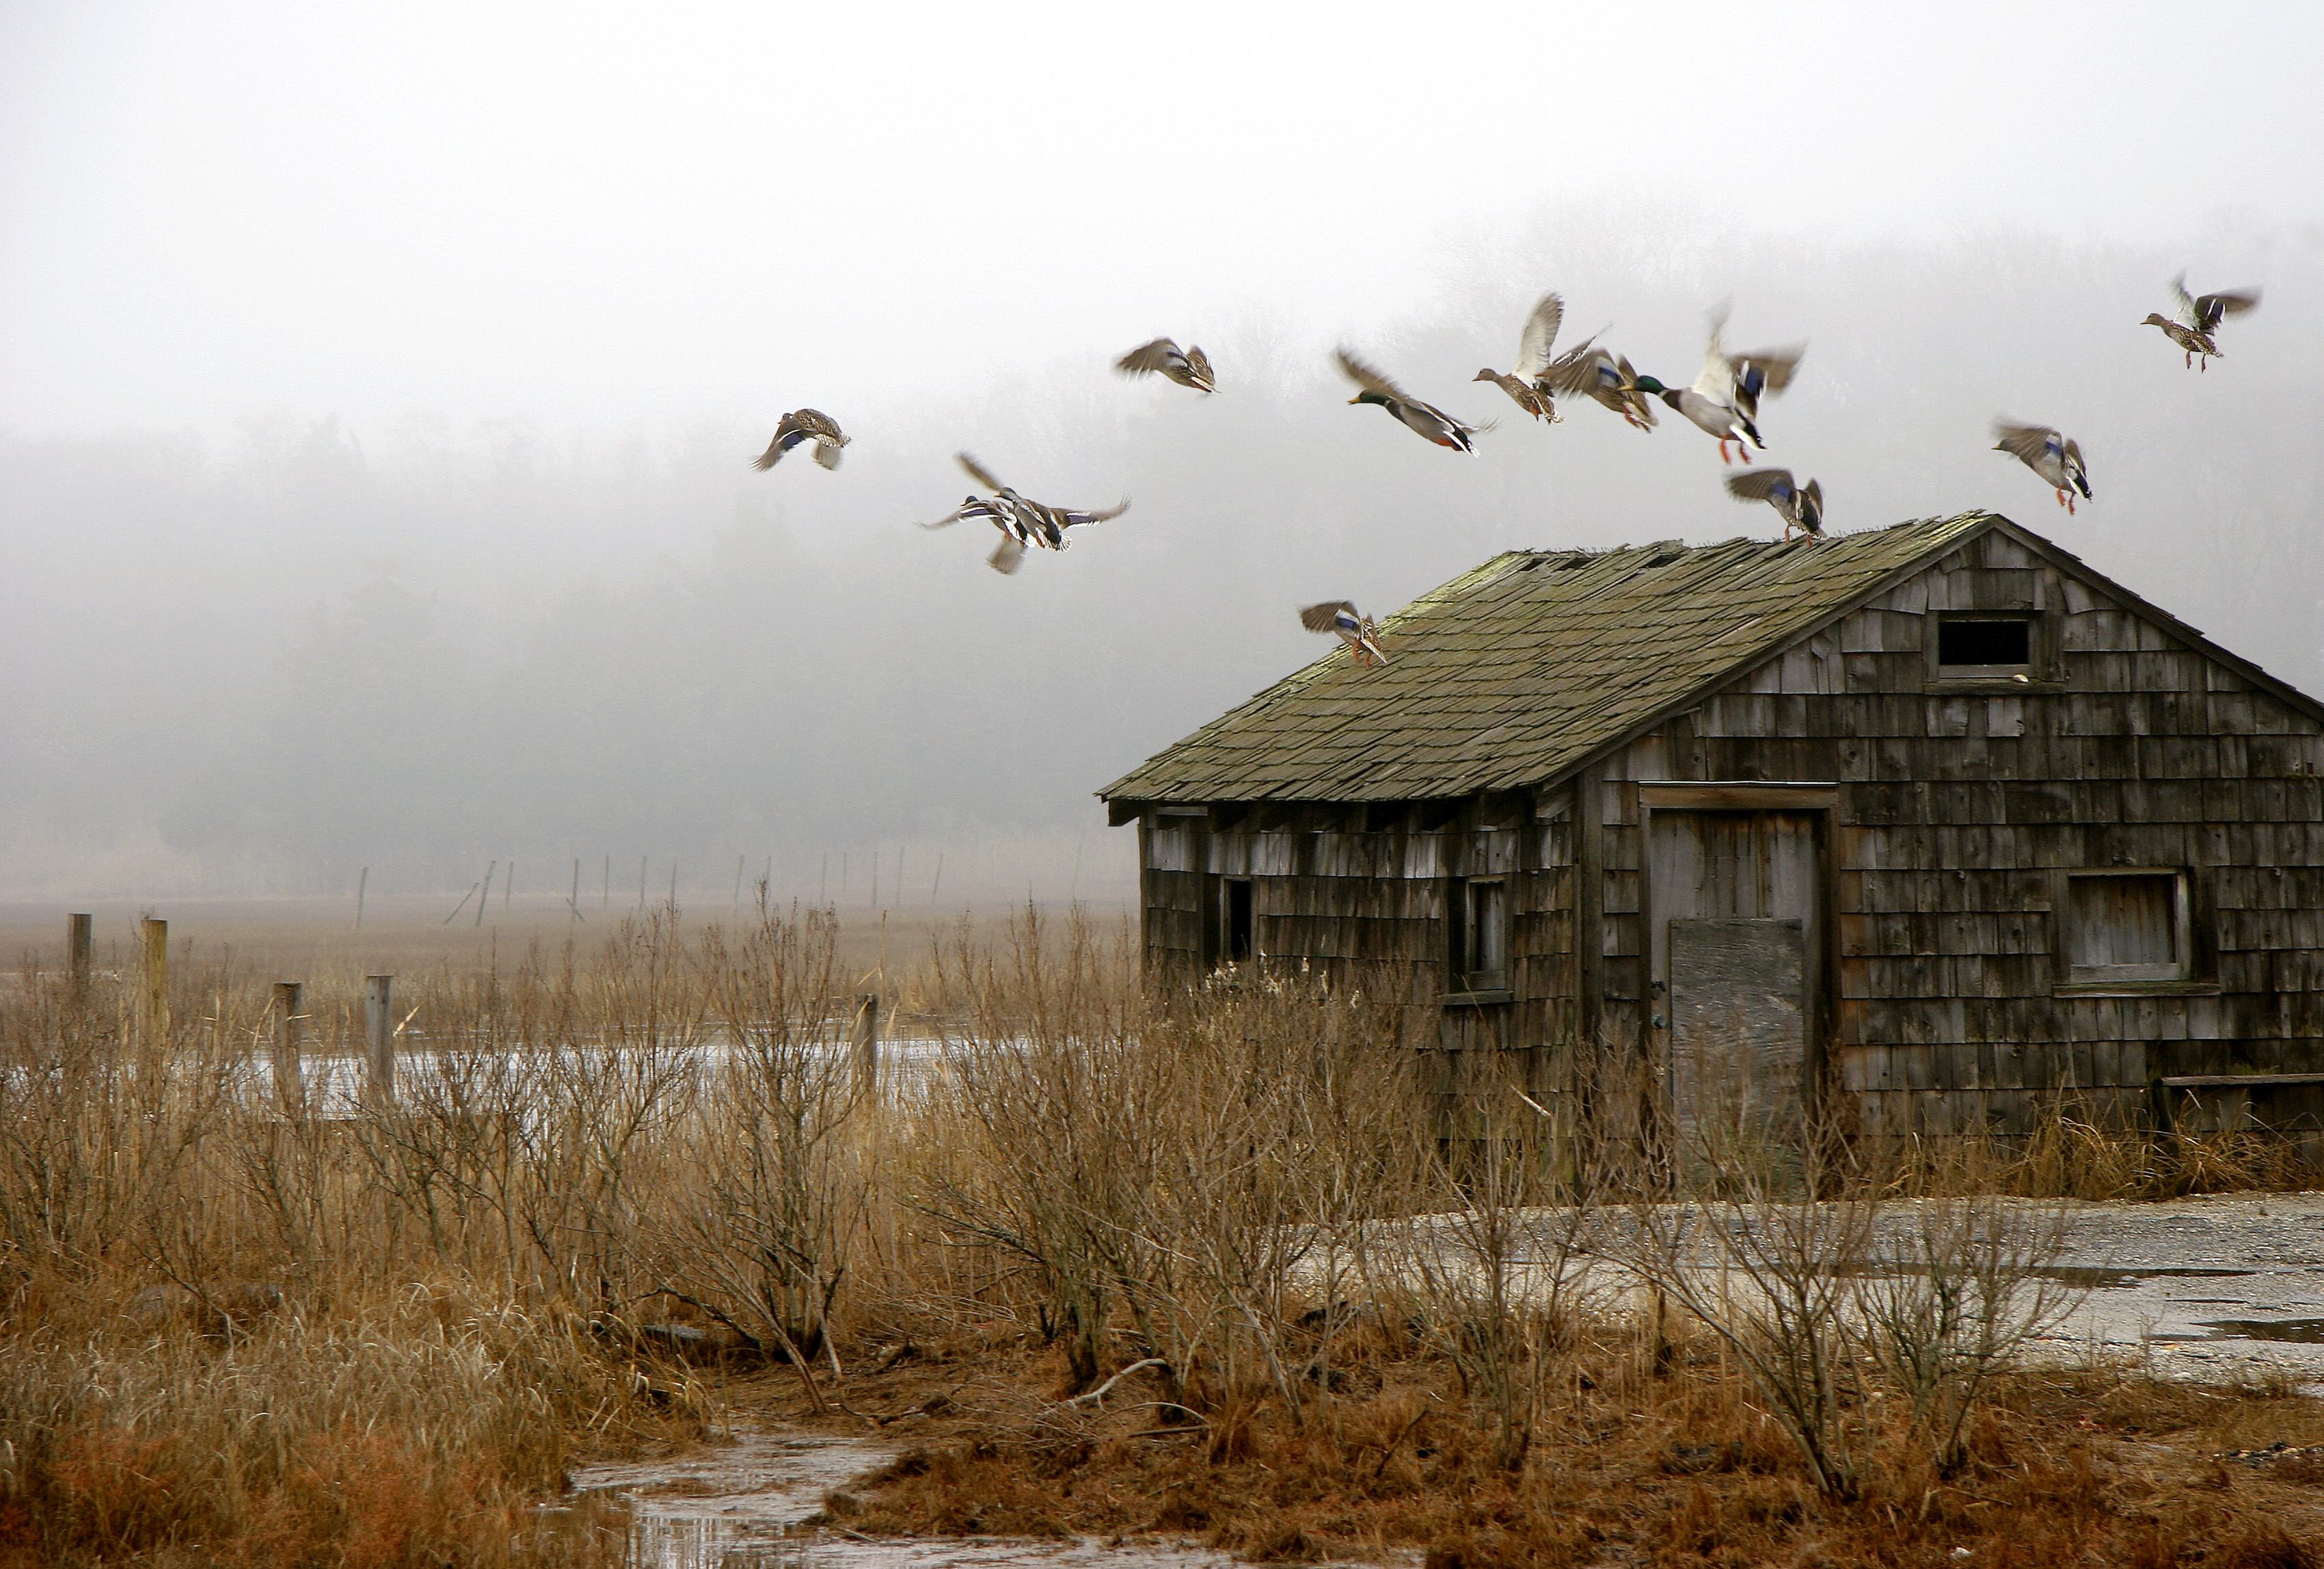 Absecon Duck Shack&Ducks IMG_0706